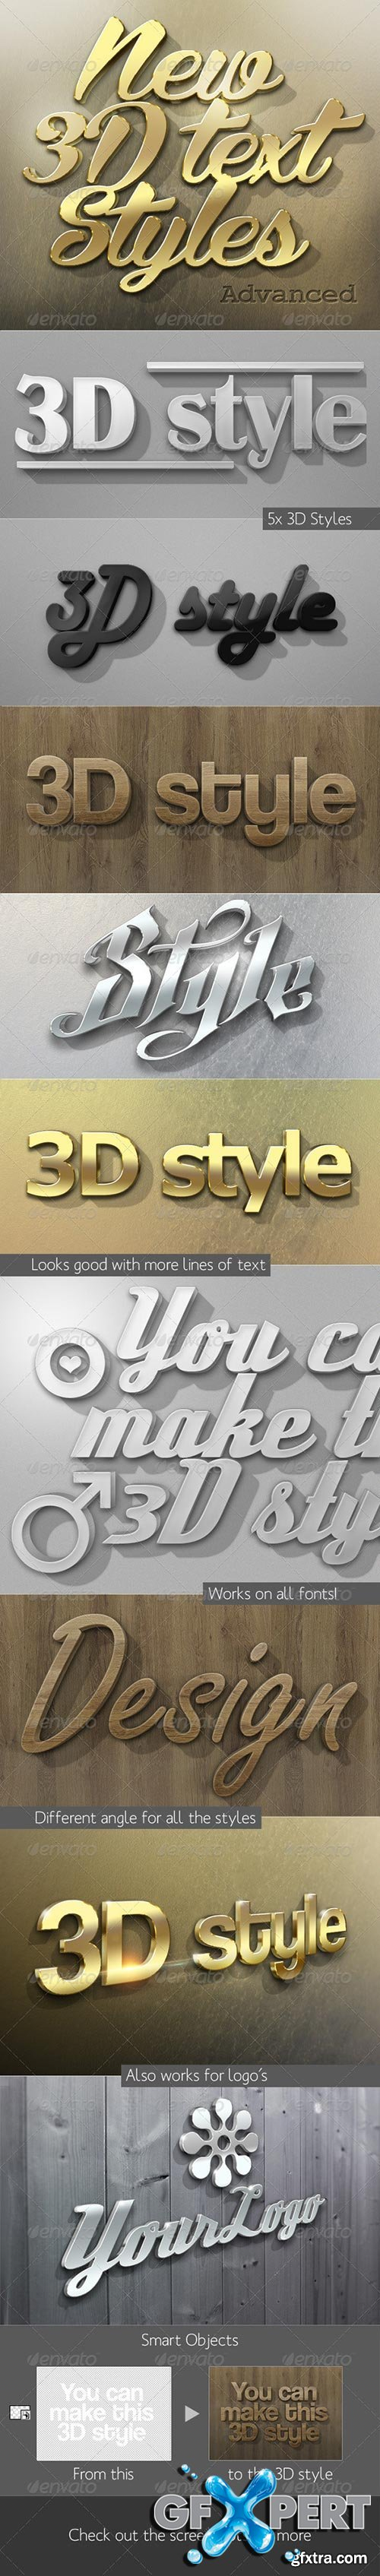 GraphicRiver - New 3D Text Styles Advanced